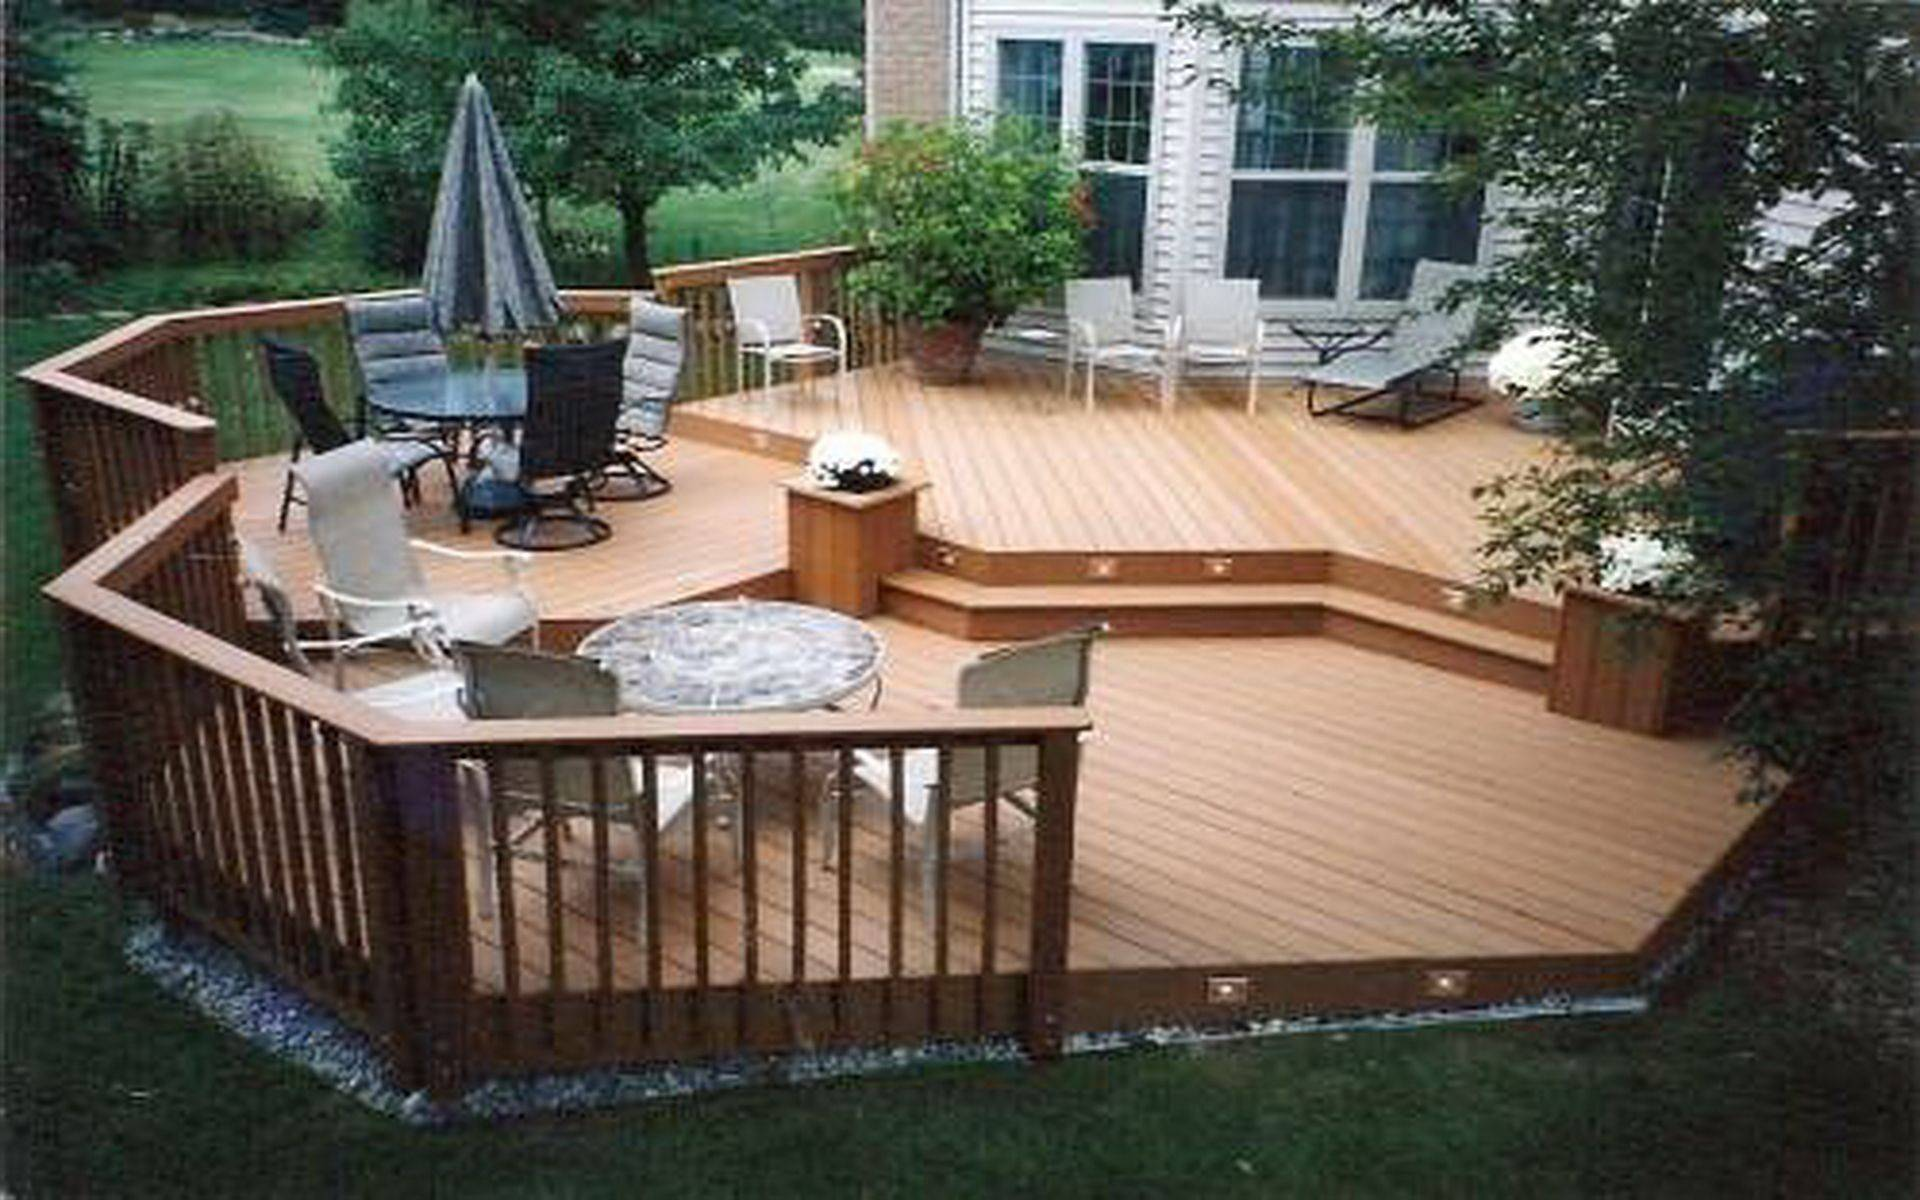 front deck ideas how to build a 12x12 backyard designs 8x8 plans pictures stone hot tub surround trex designer ground level decks fire pits small yard design